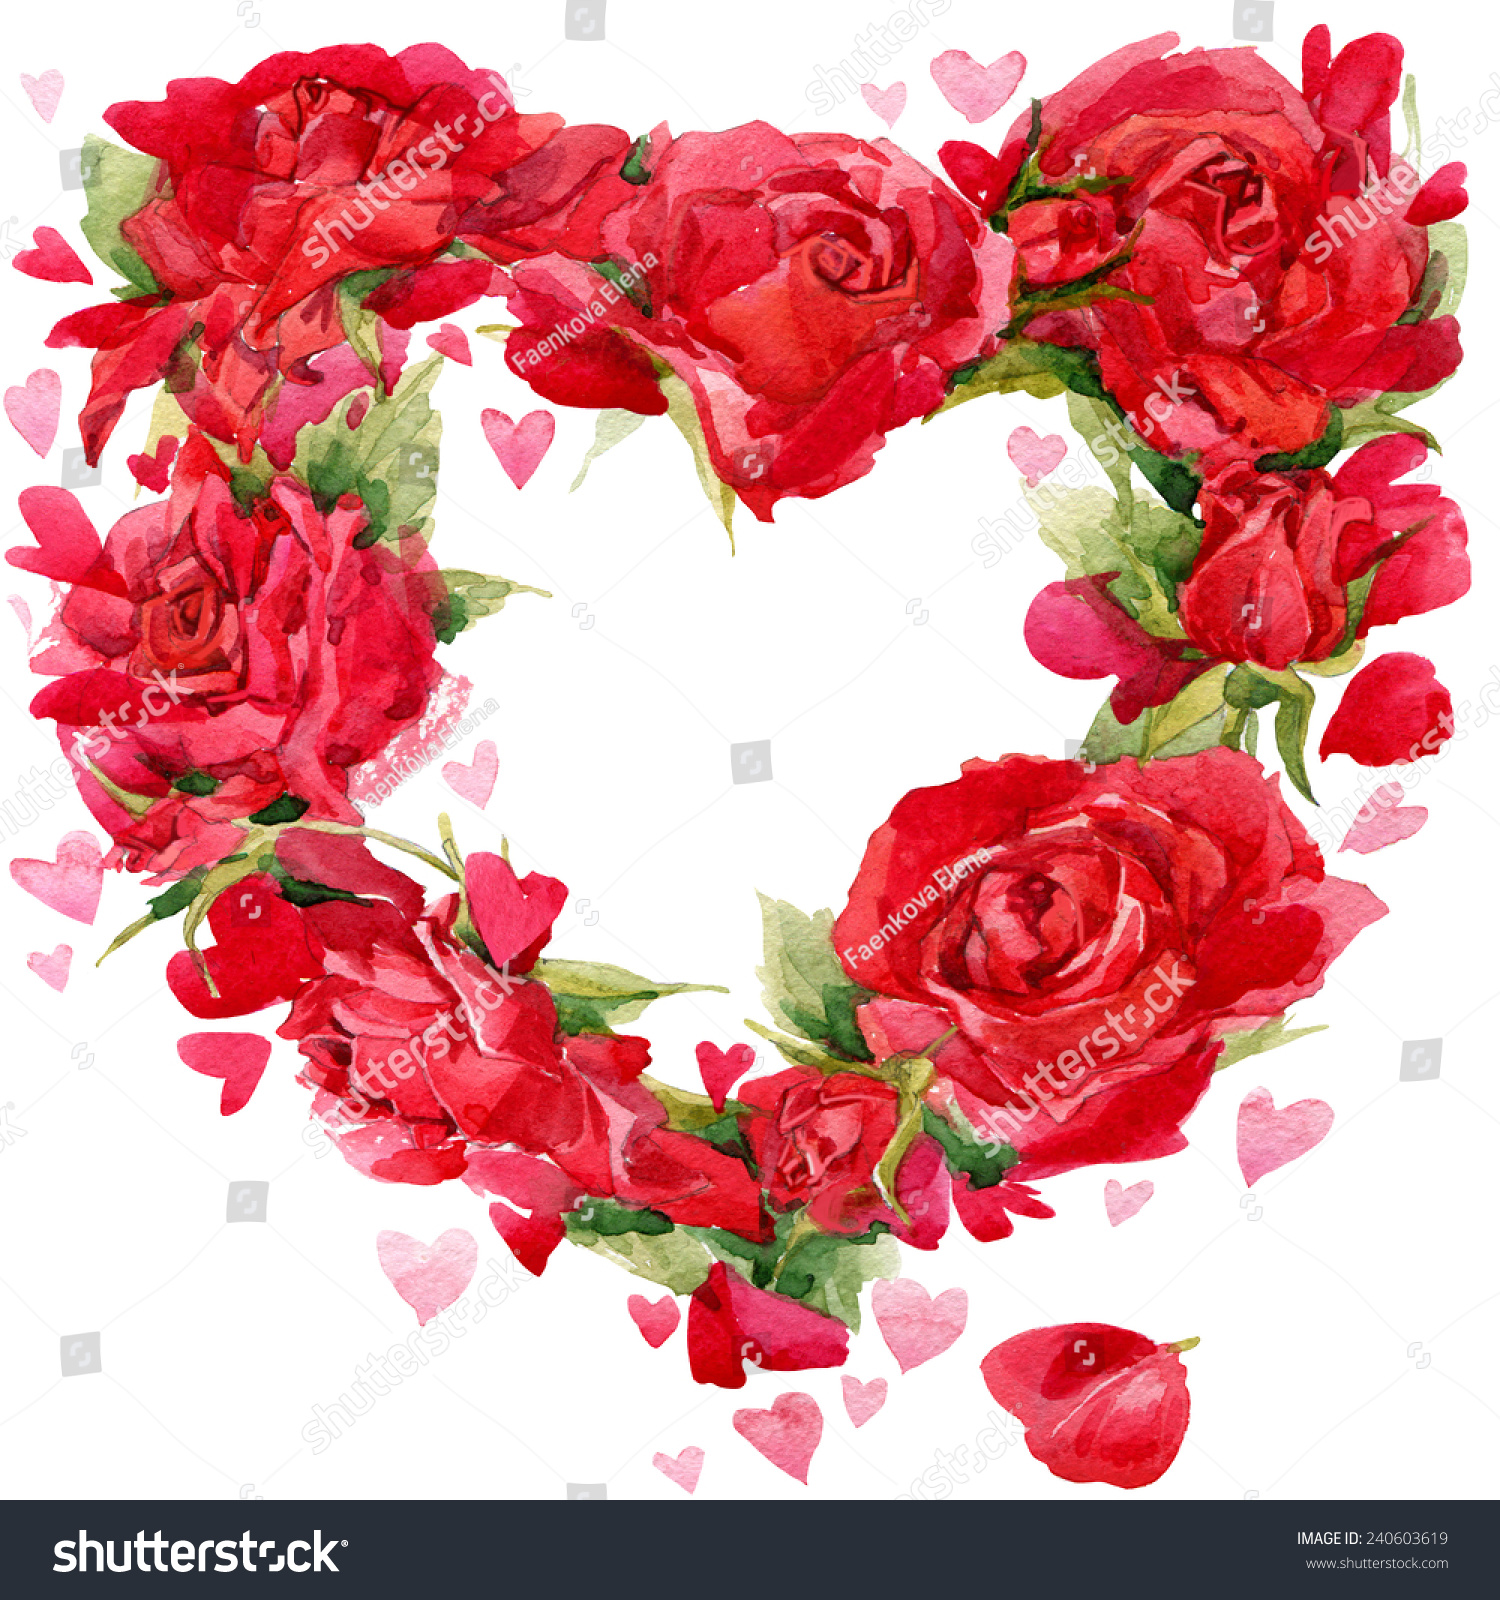 Red Heart Roses Flower Watercolor Background Stock Illustration ...